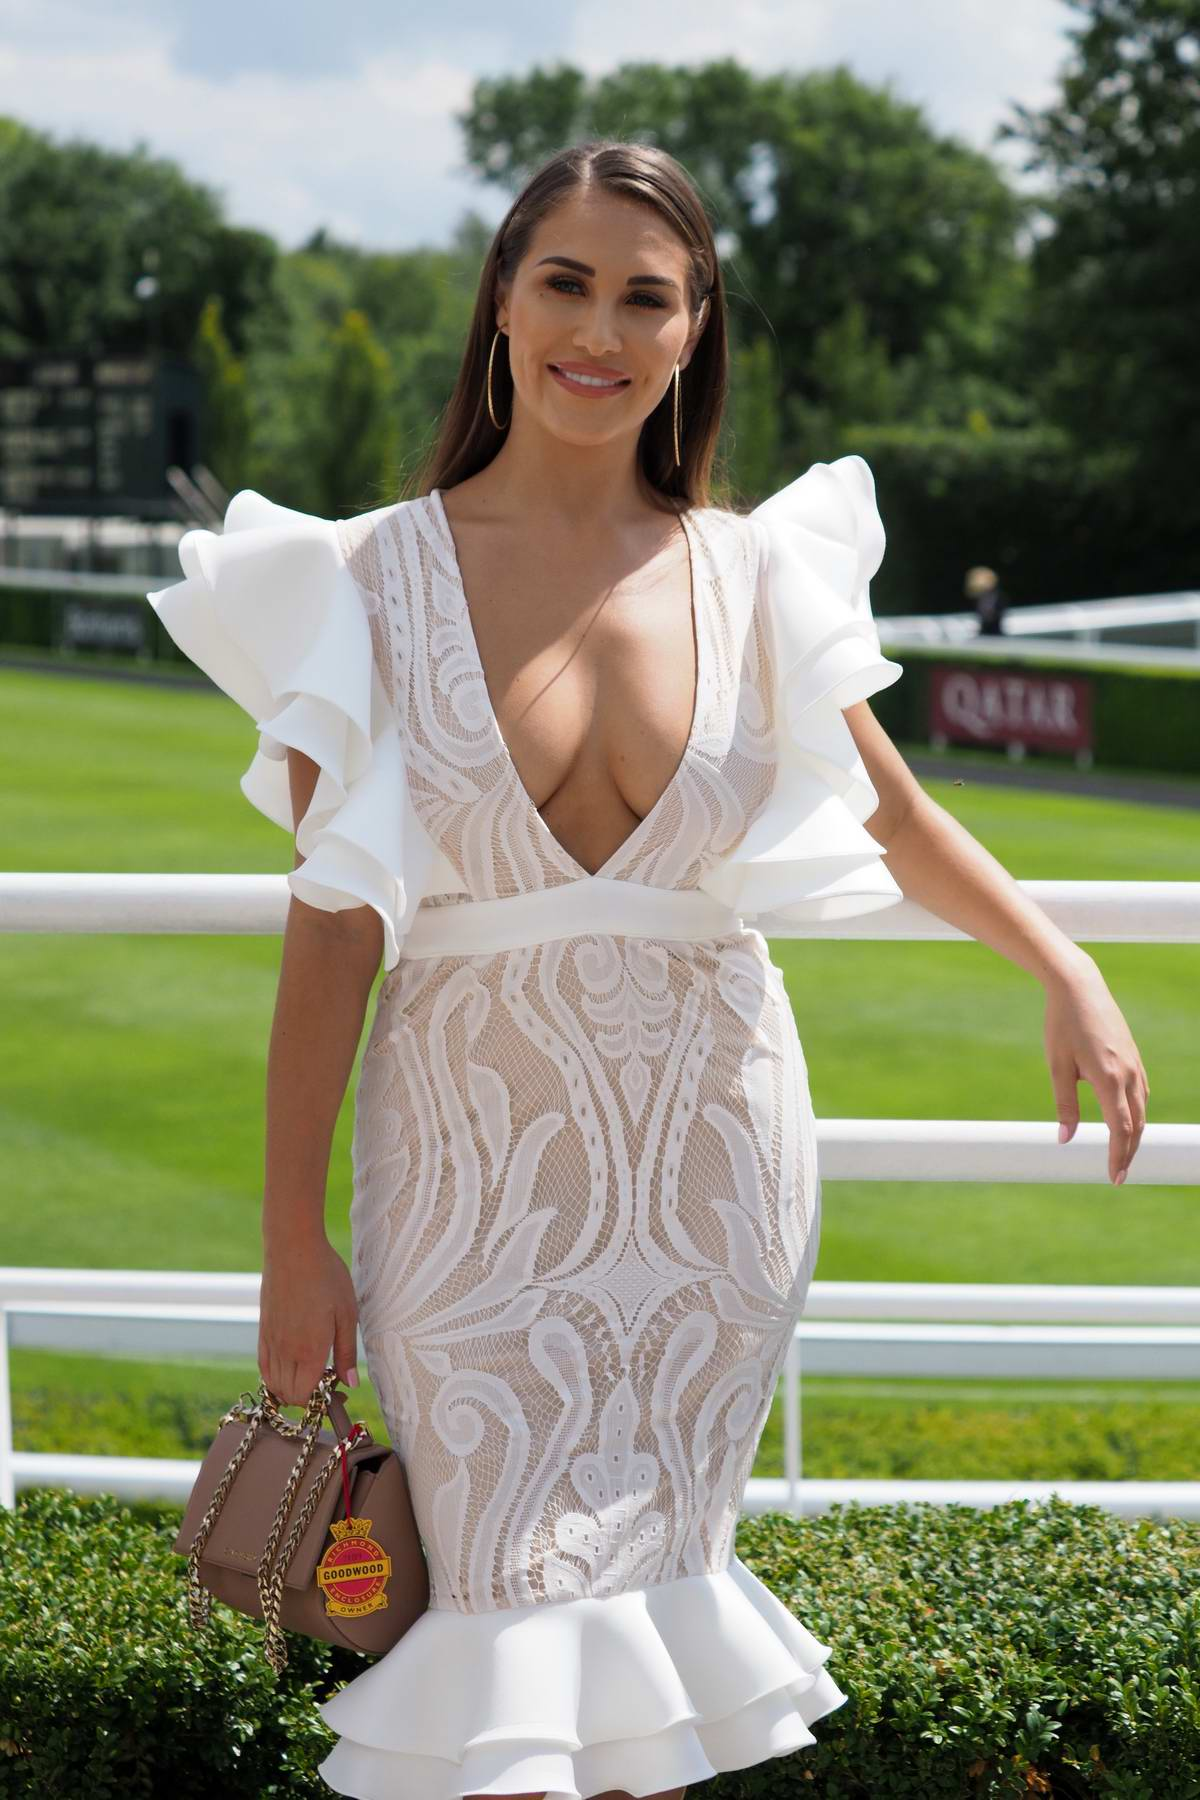 Chloe Goodman attends the Qatar Goodwood Festival at Goodwood Racecourse in Chichester, West Sussex, UK